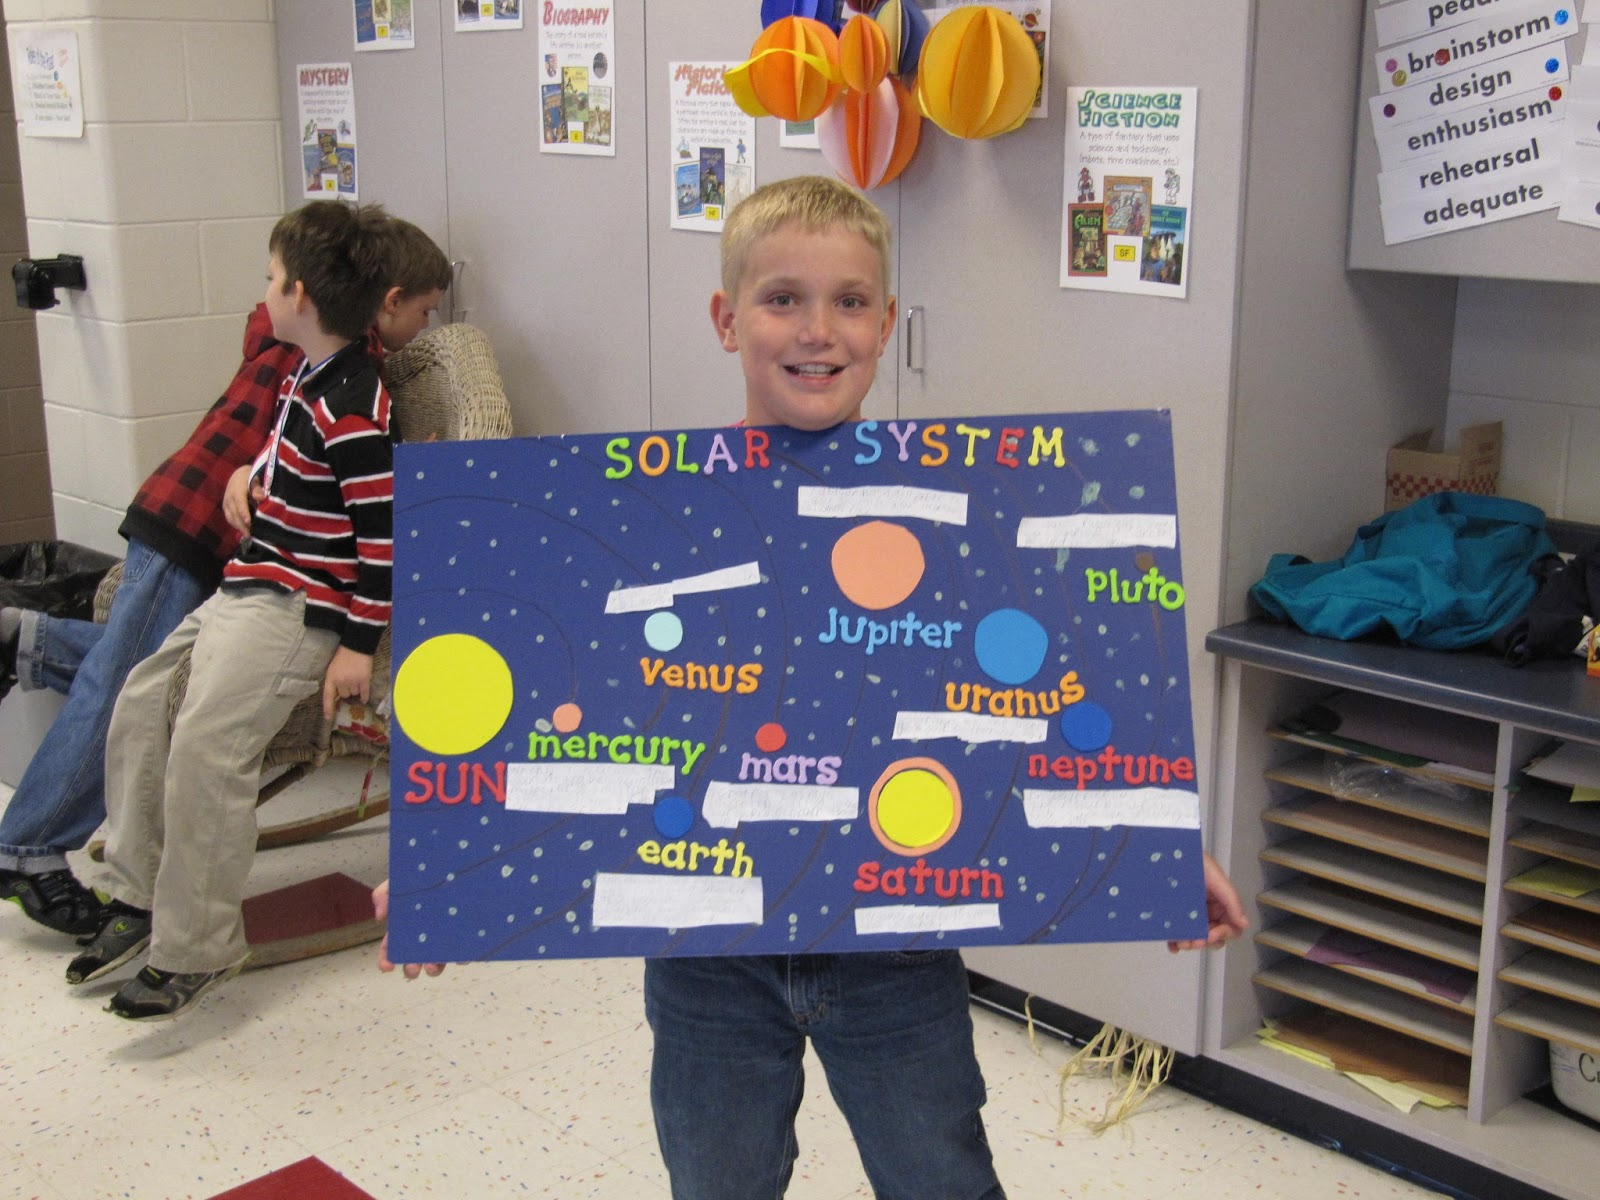 solar system projects for 3rd grade - photo #30